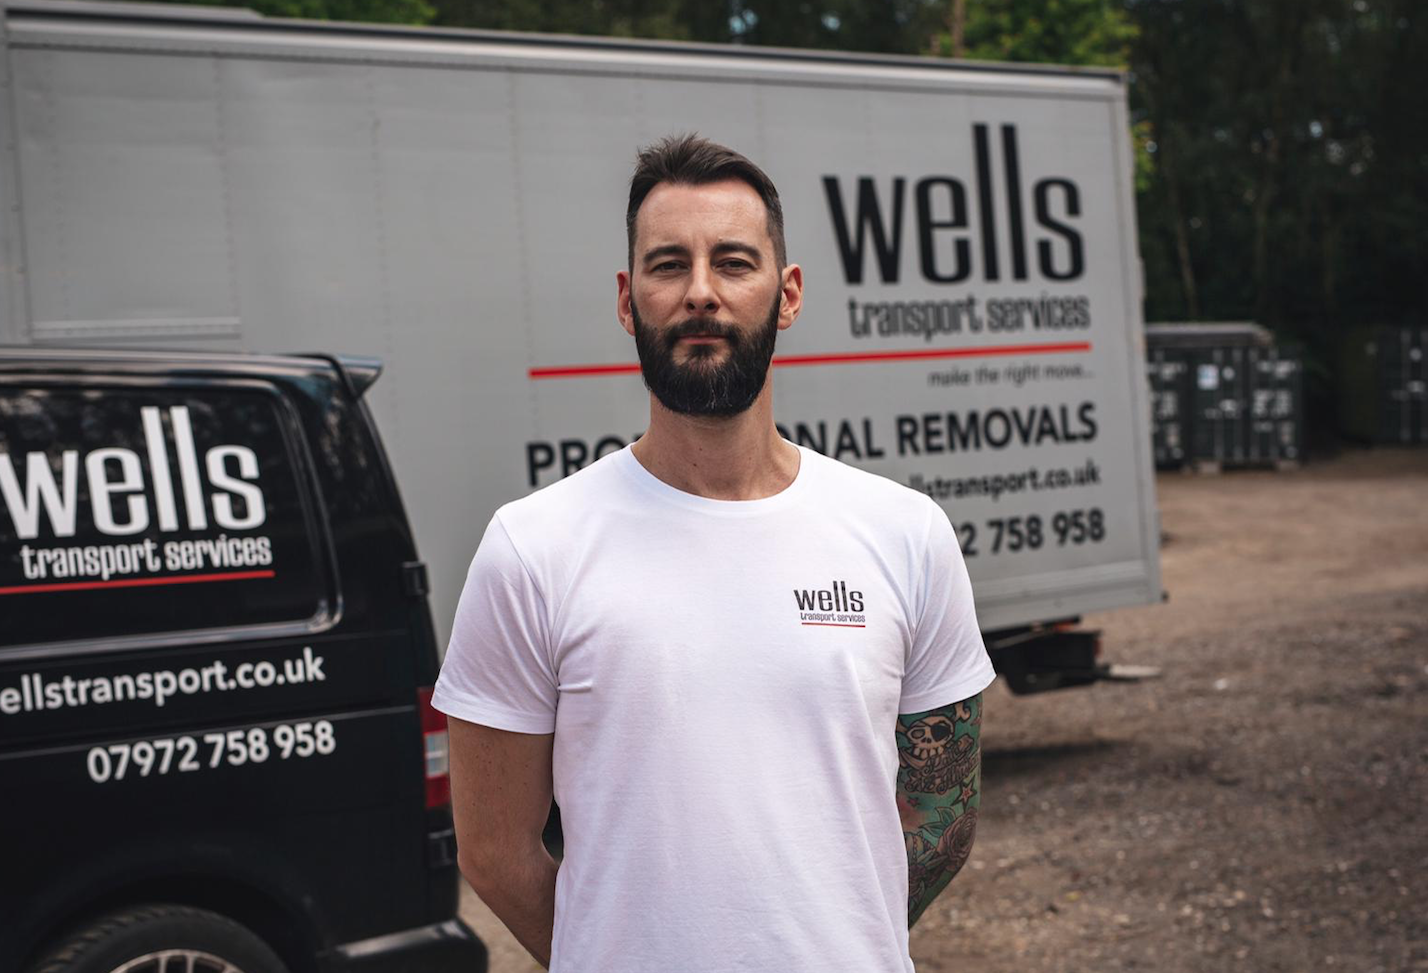 Image of Tom Moore from Wells Transport Services